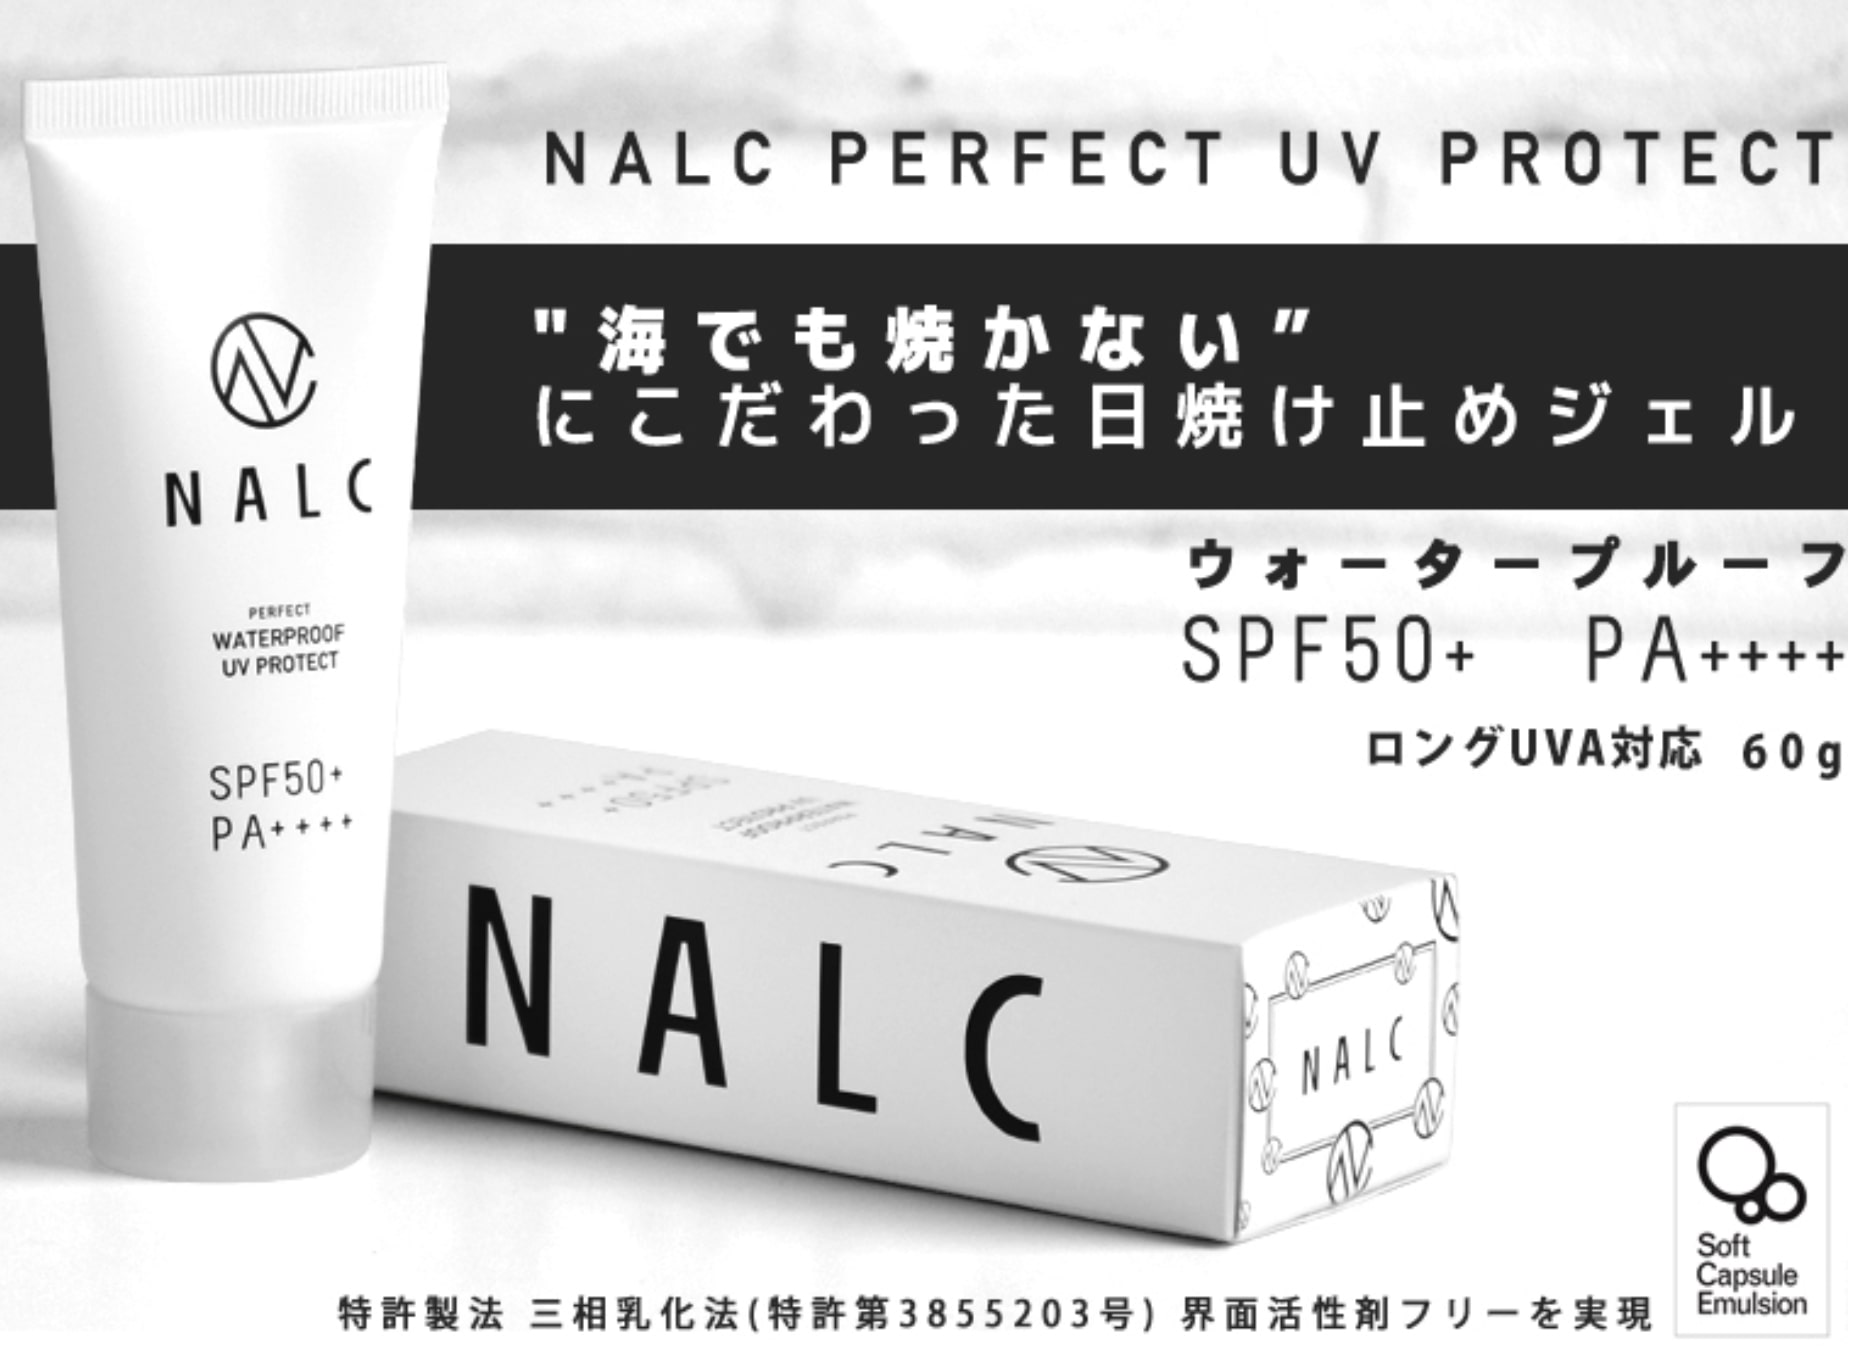 NALC PERFECT UV PROTECT (クリームタイプ)